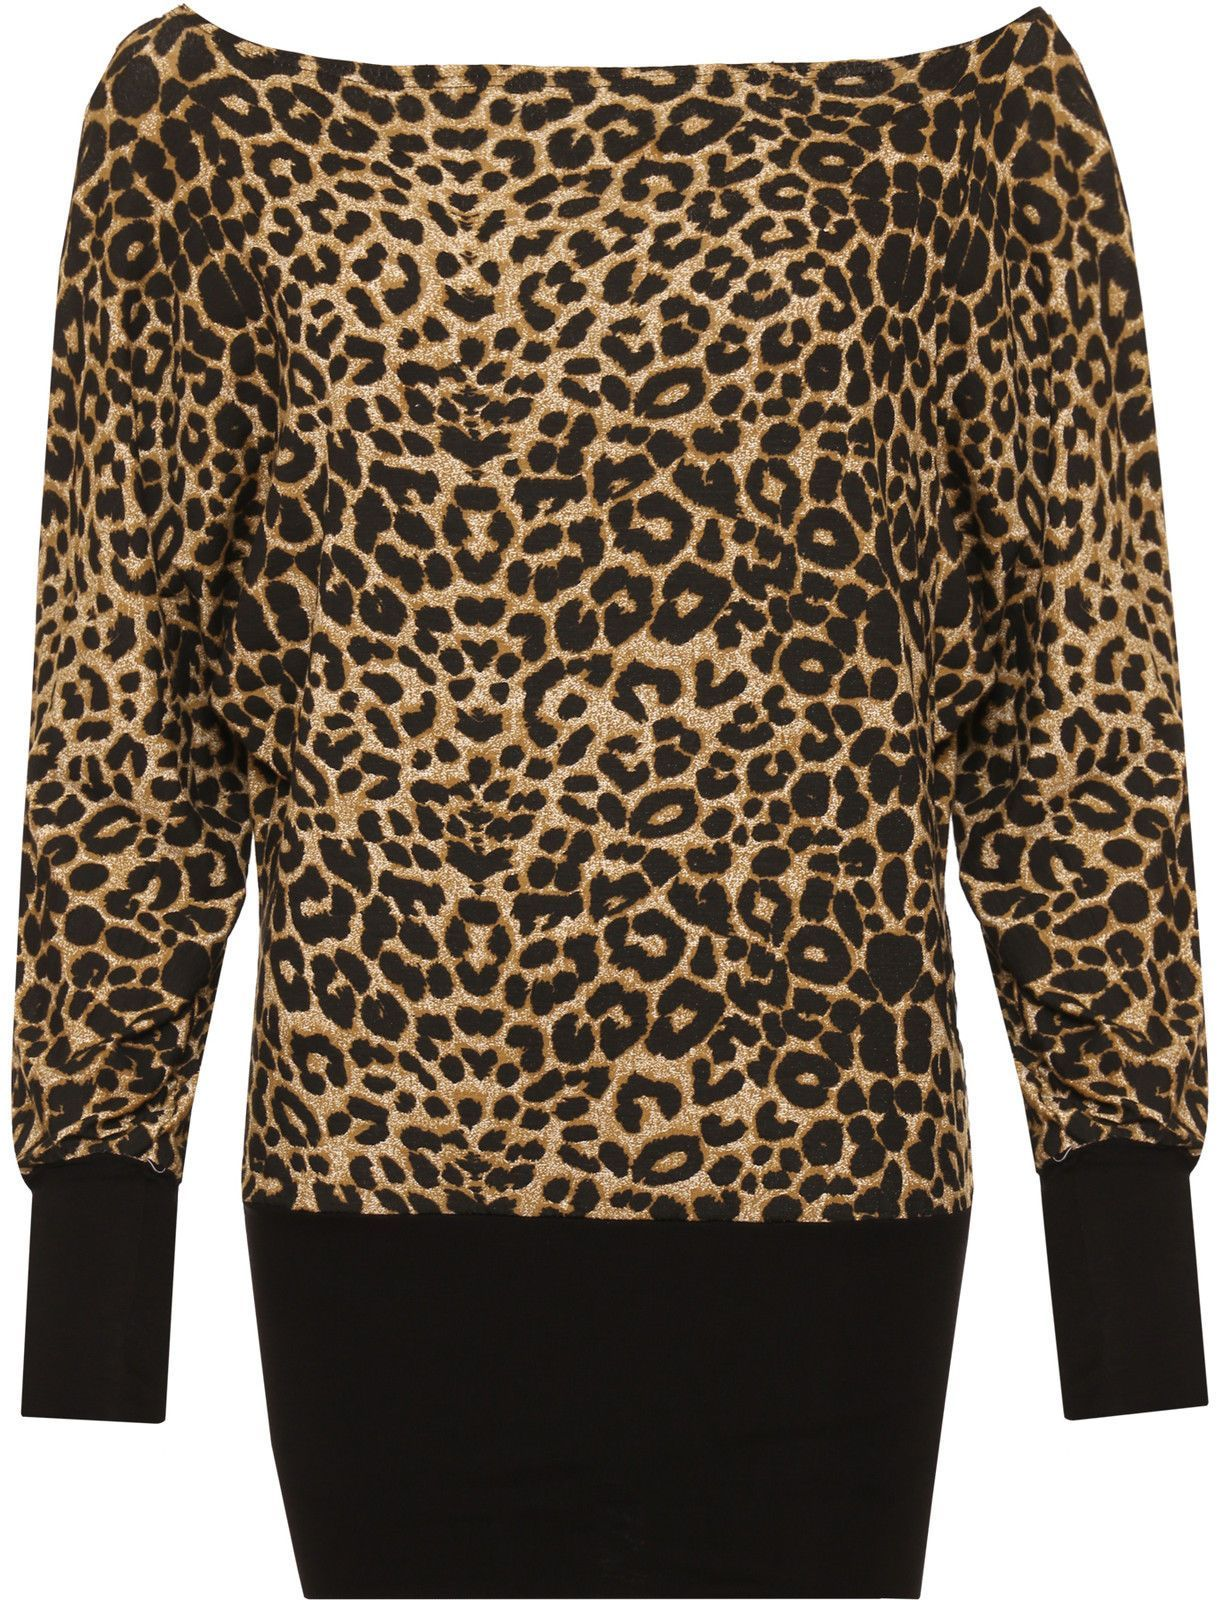 b1bdc267f6 Womens Plus Leopard Batwing Top Long Sleeve Animal Print Bodycon Stretch  Ladies